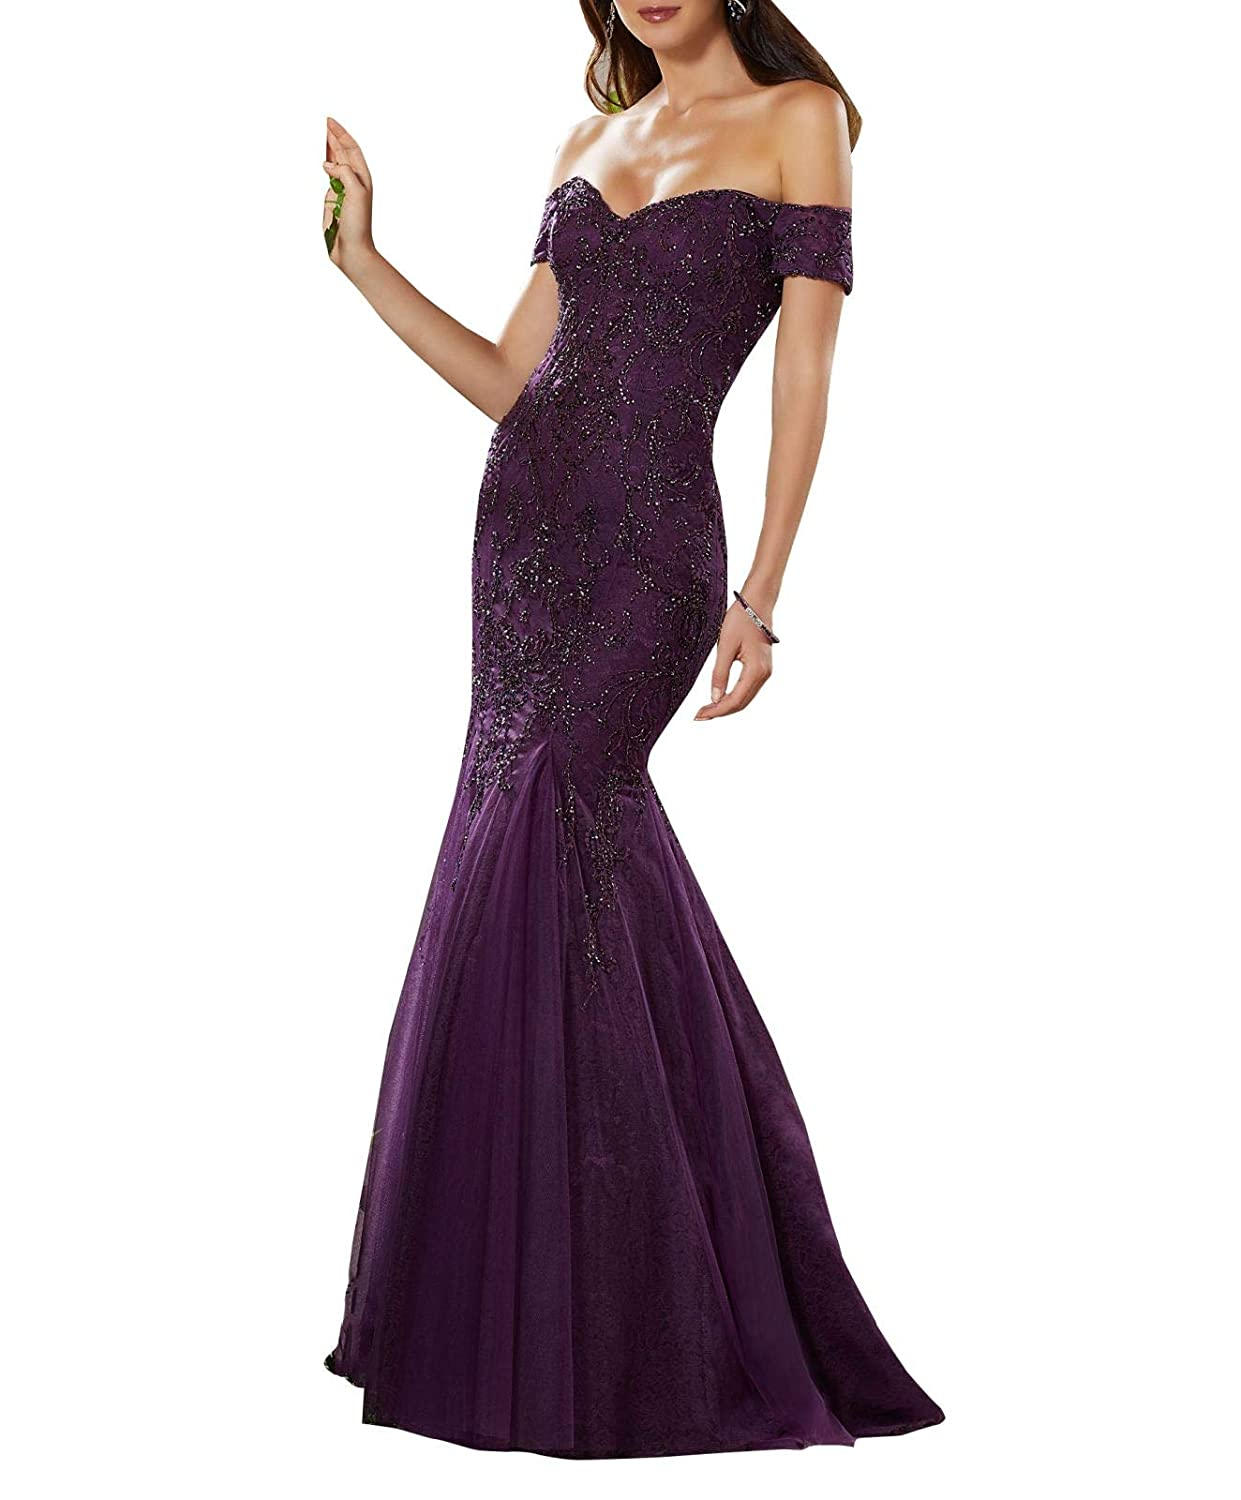 Dark Purple Aishanglina Aline Sexy Off The Shoulder Lace Embroidered Party Dress Prom Gown with Jewelled Beading